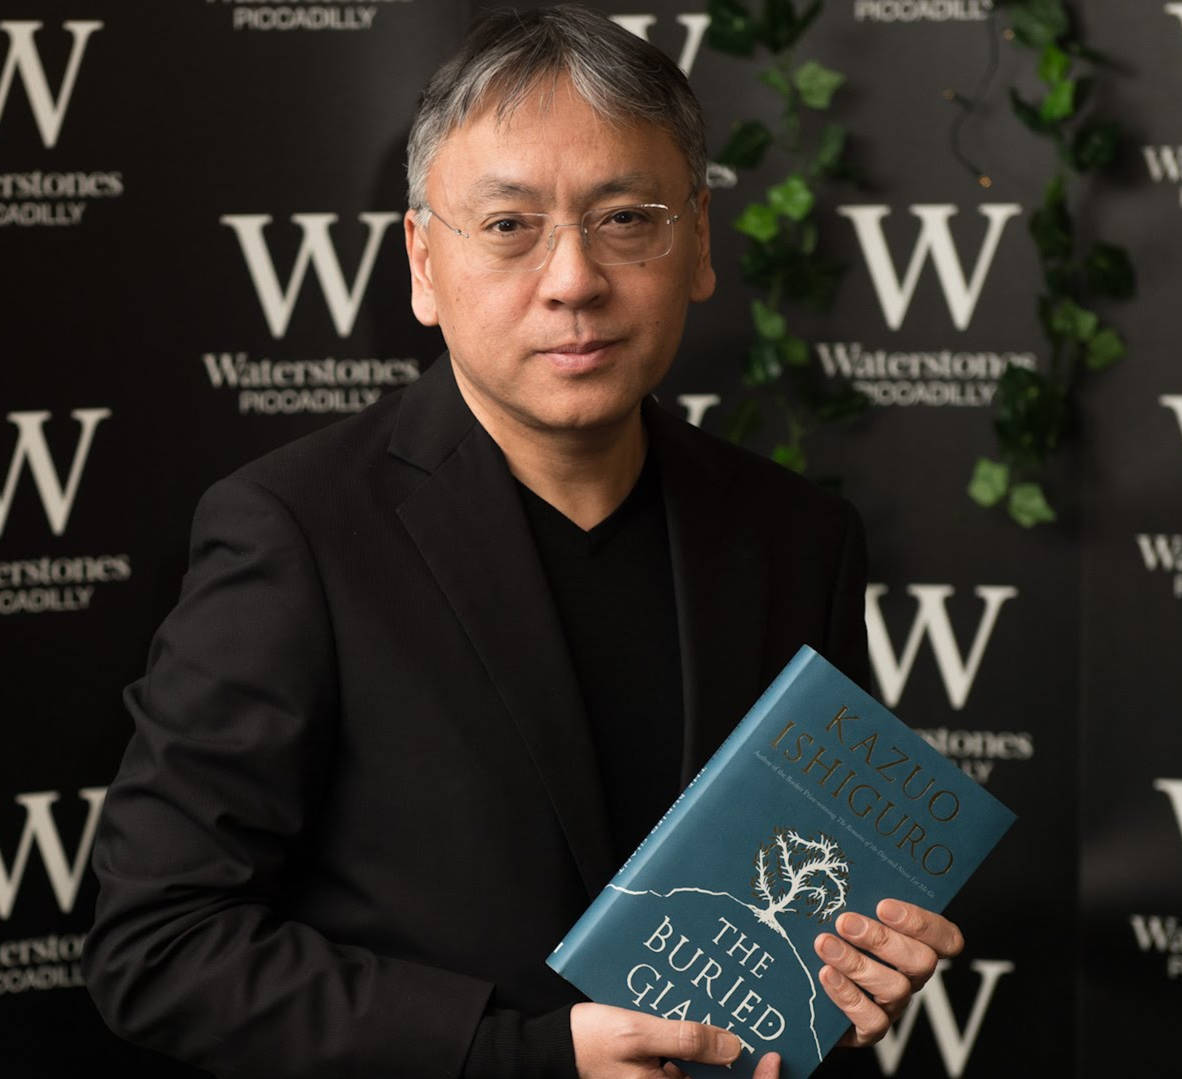 Kazuo Ishiguro, holding the Buried Giant